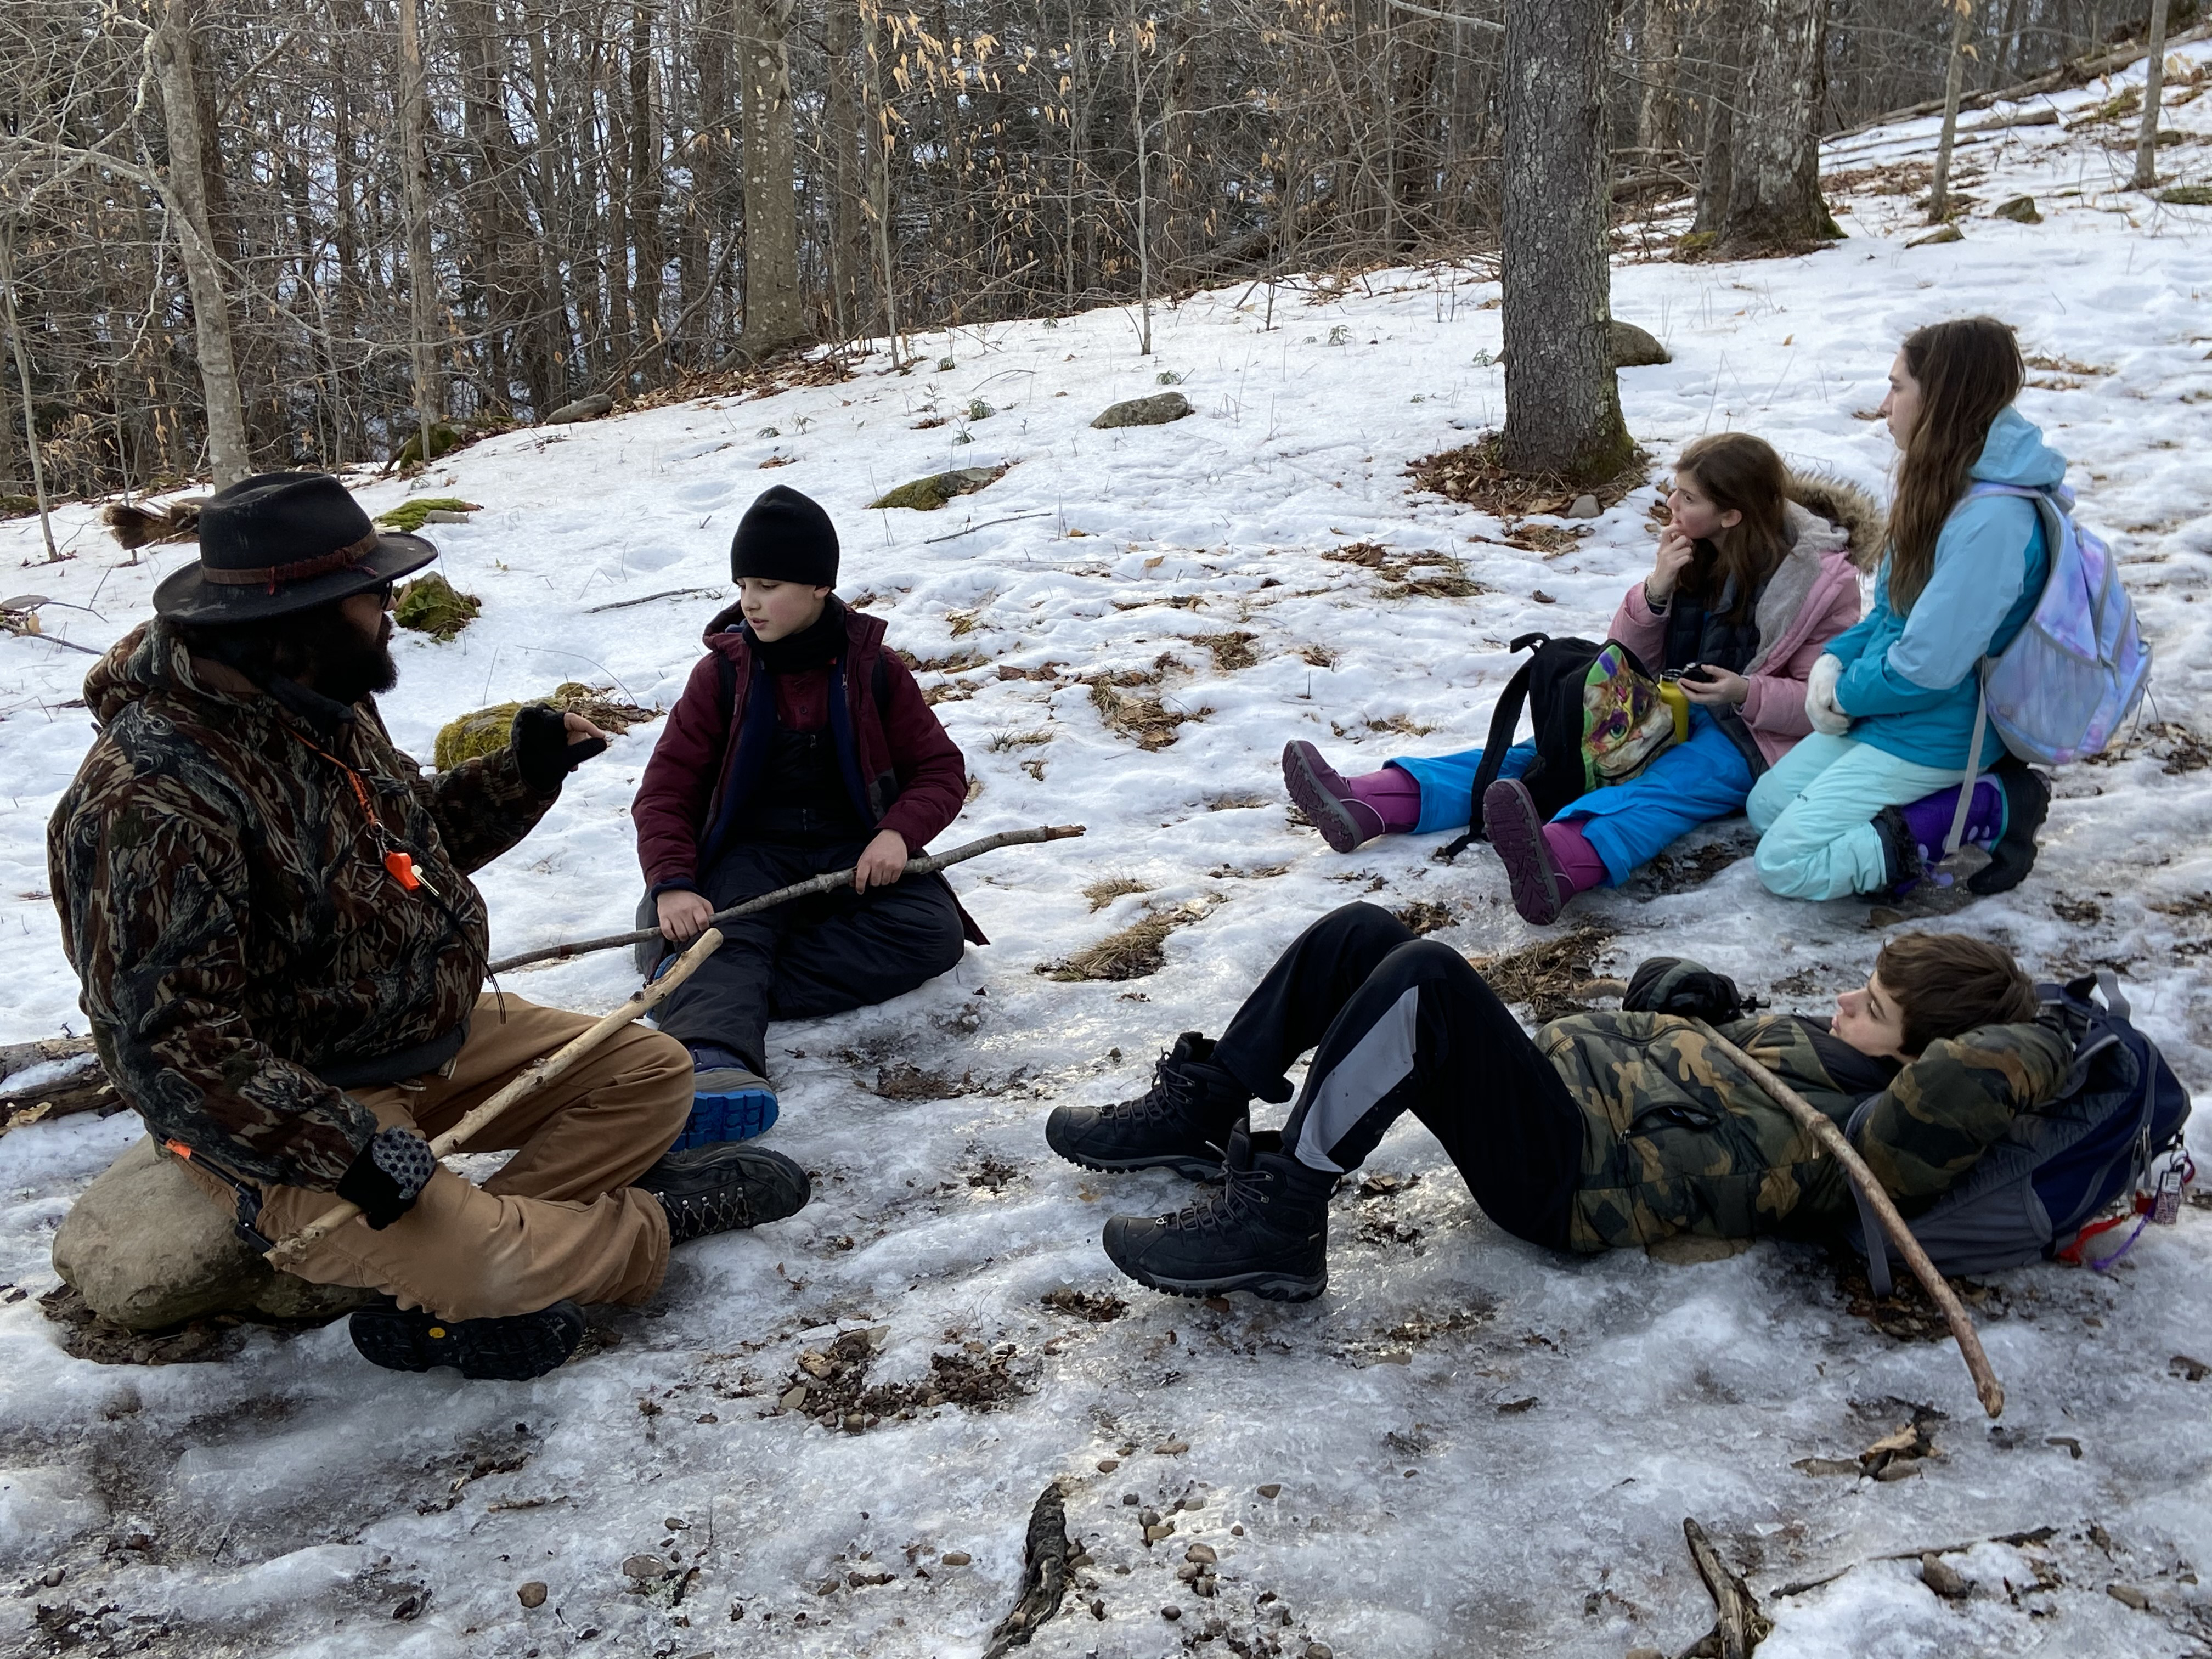 Students learn about the outdoors